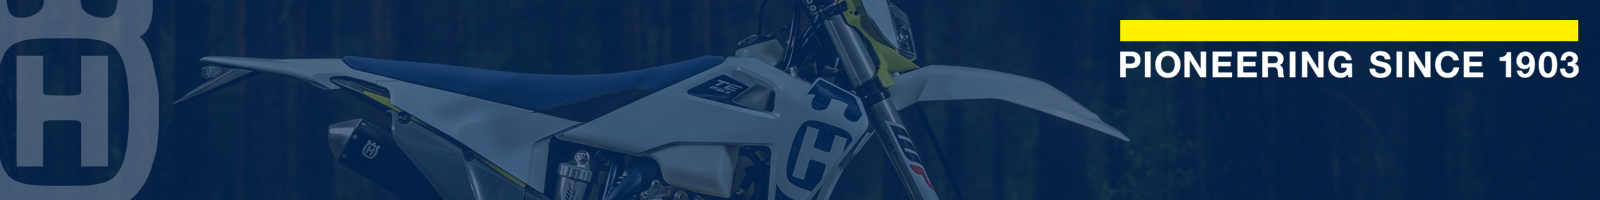 NEW HUSQVARNA MOTORCYCLES